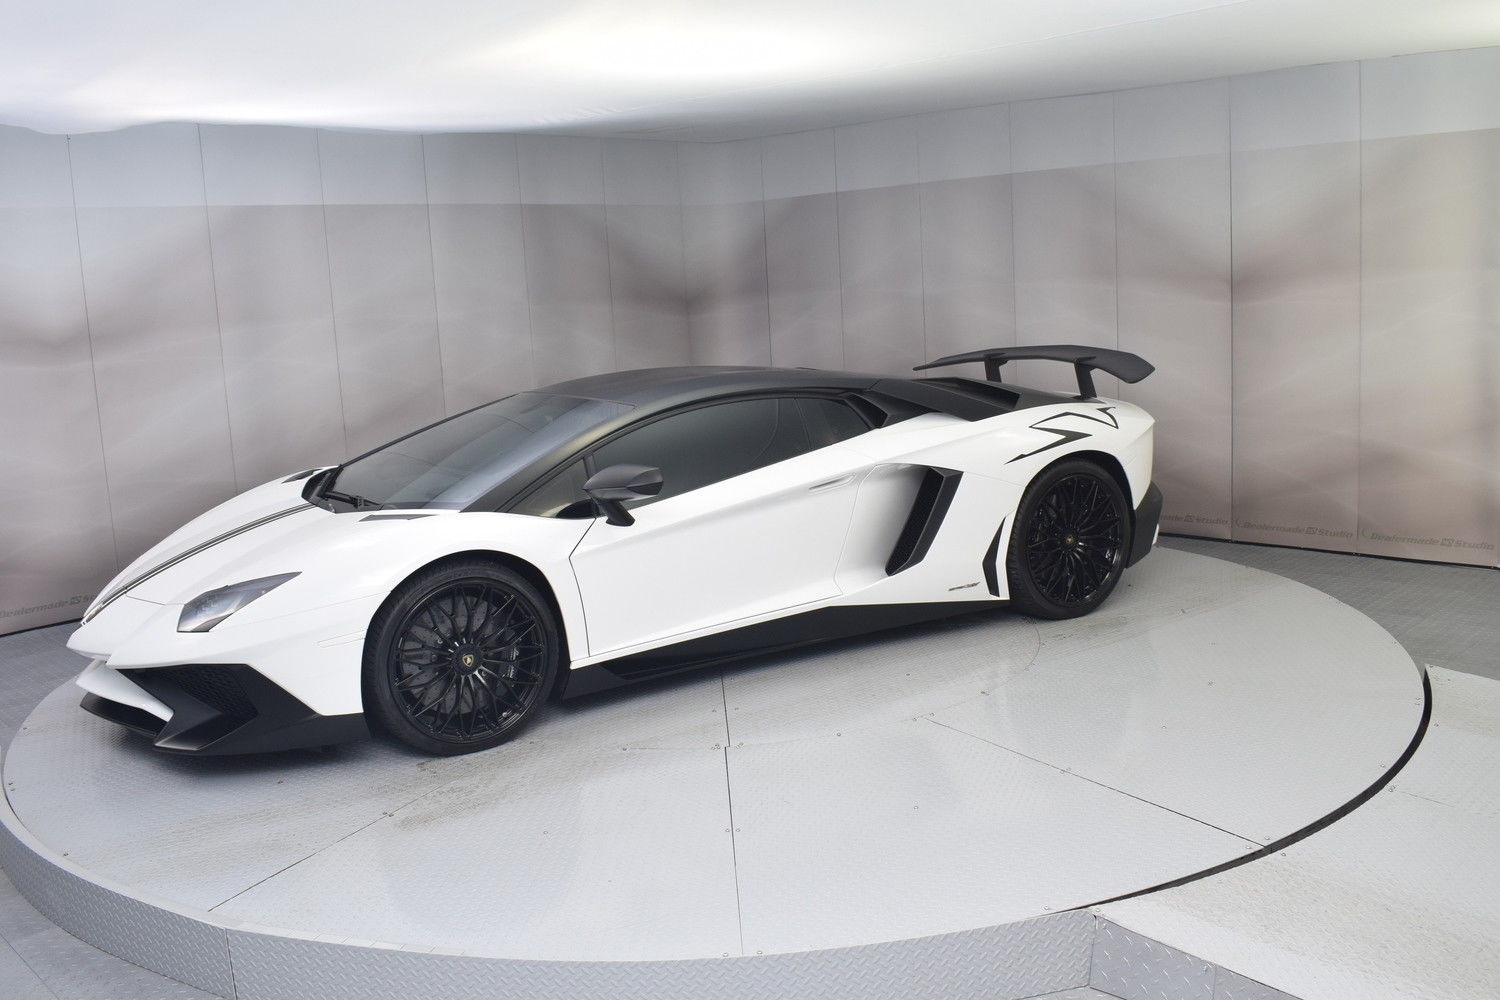 Awesome 2017 Lamborghini Aventador Sv Coupe In Bianco Monocerus With